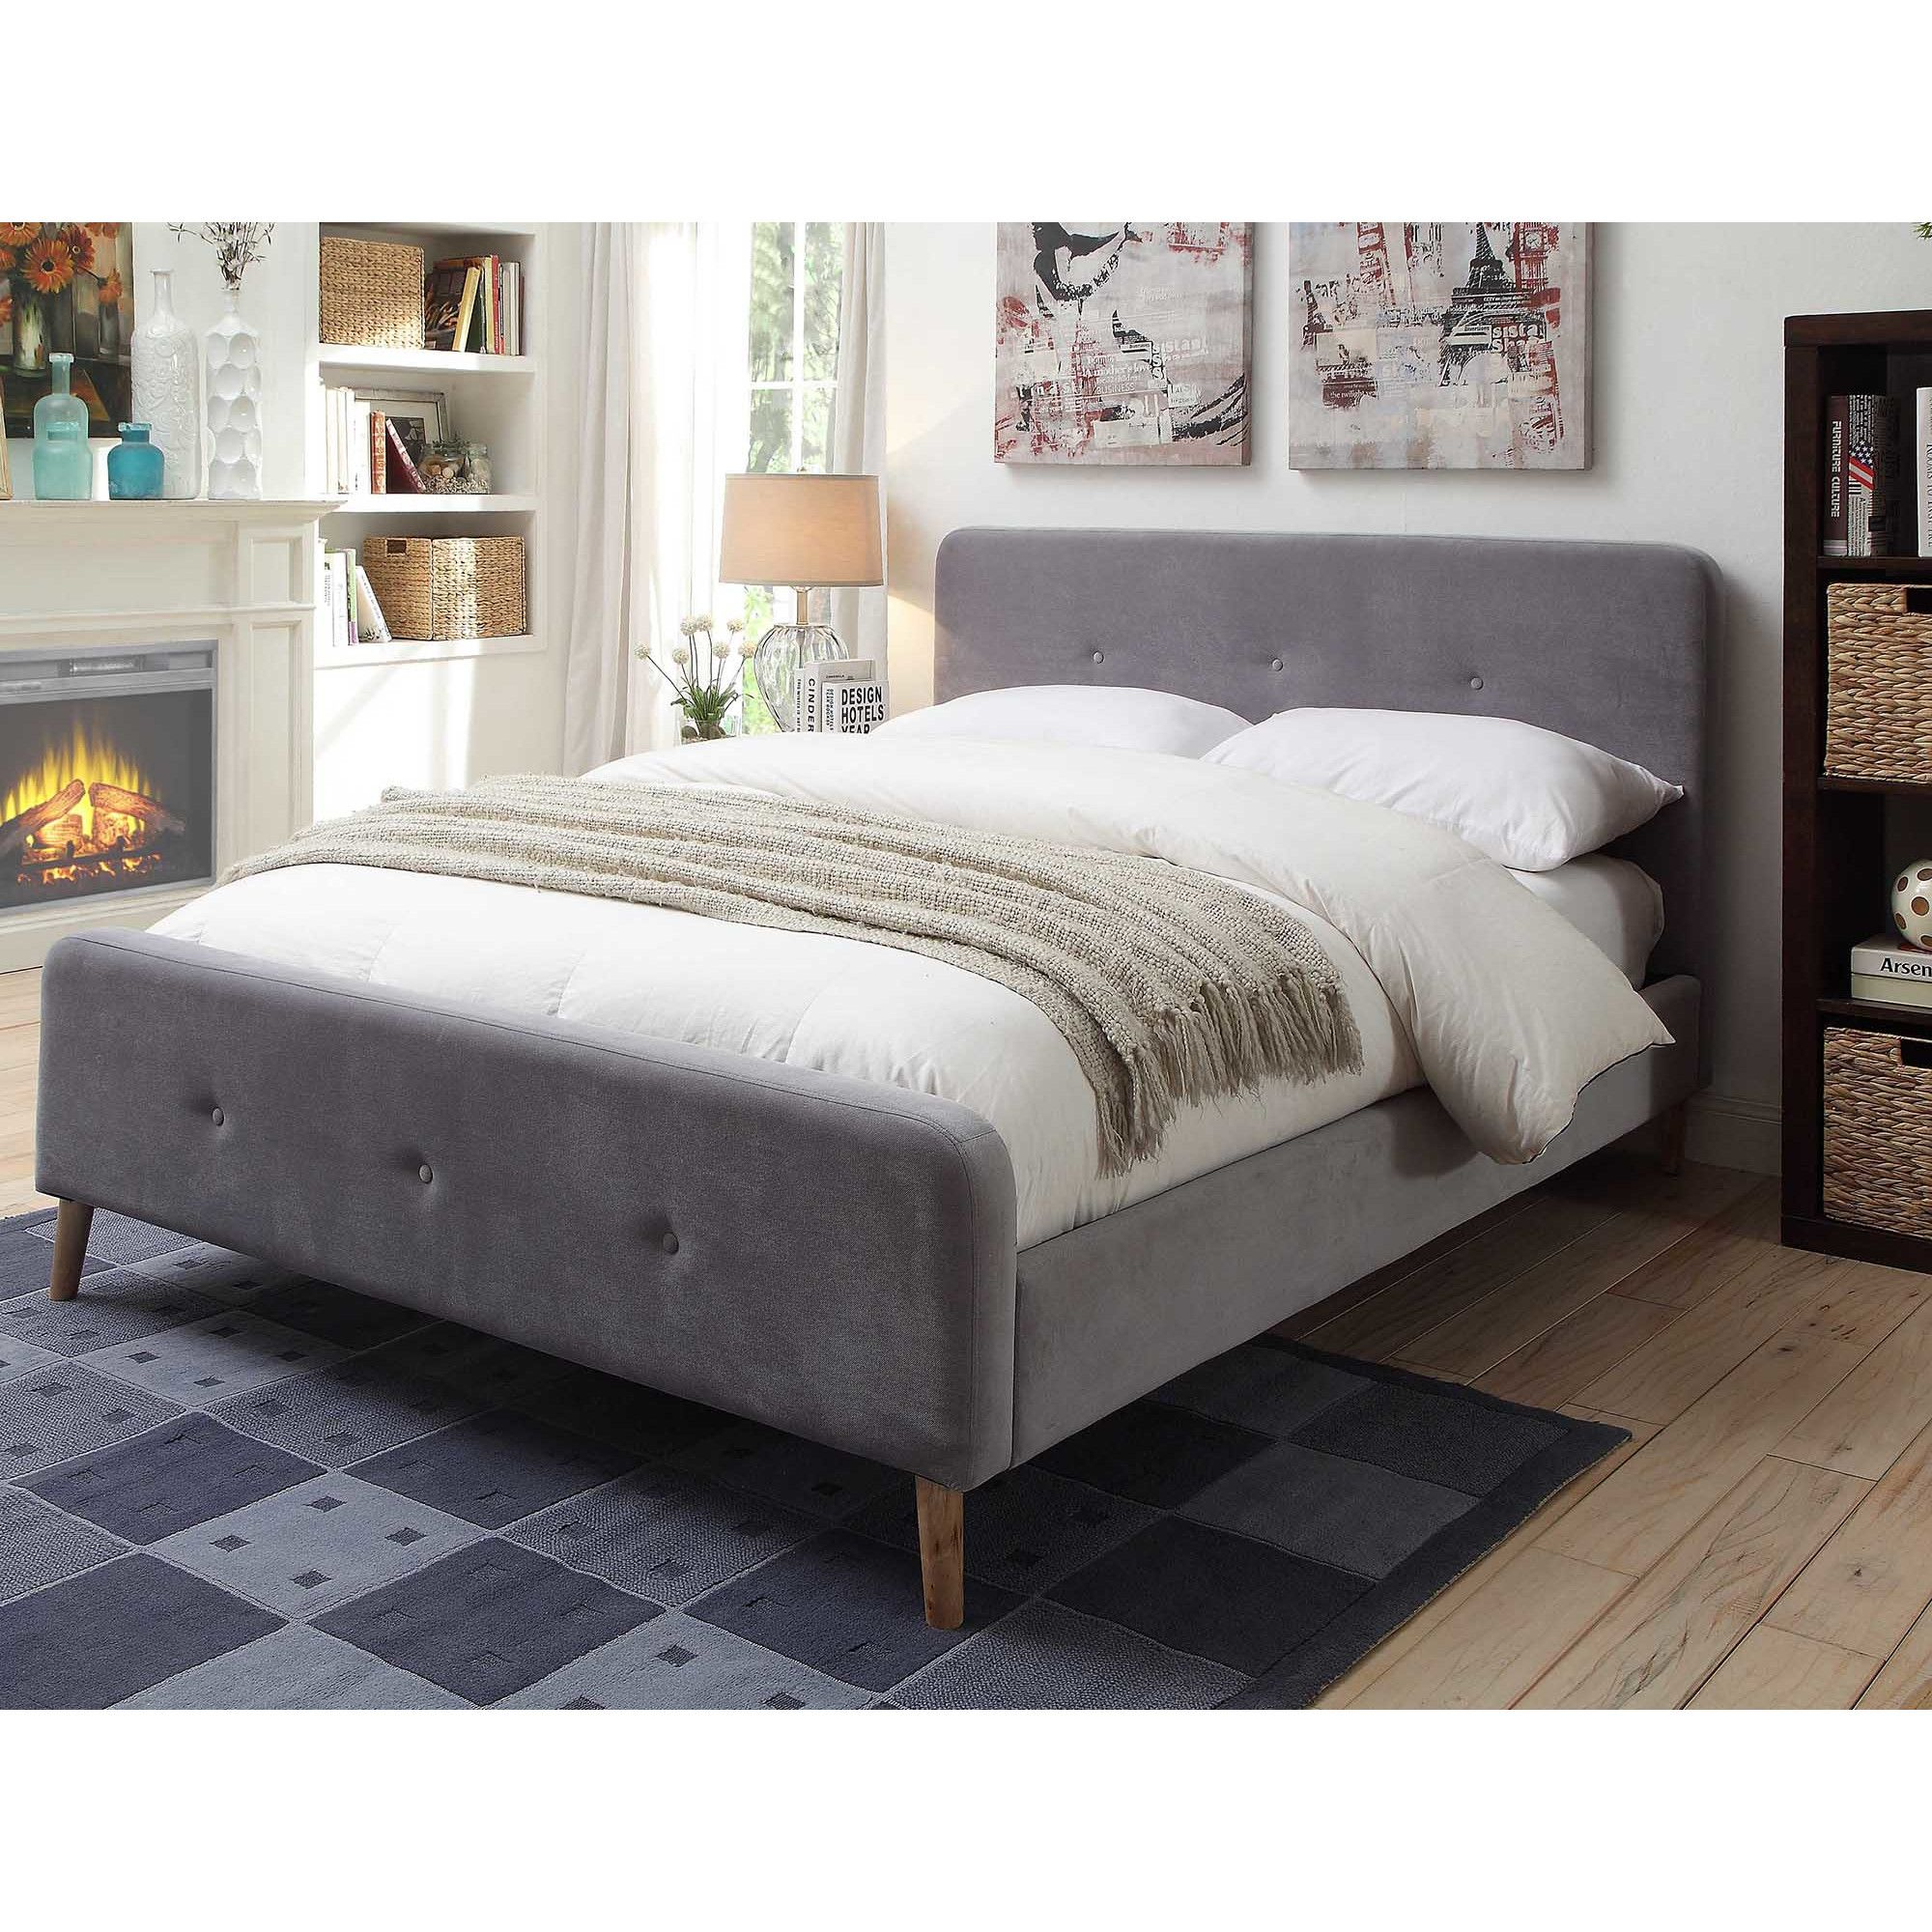 New Futon Platform Bed Graphics — Beautiful Furniture Home Ideas